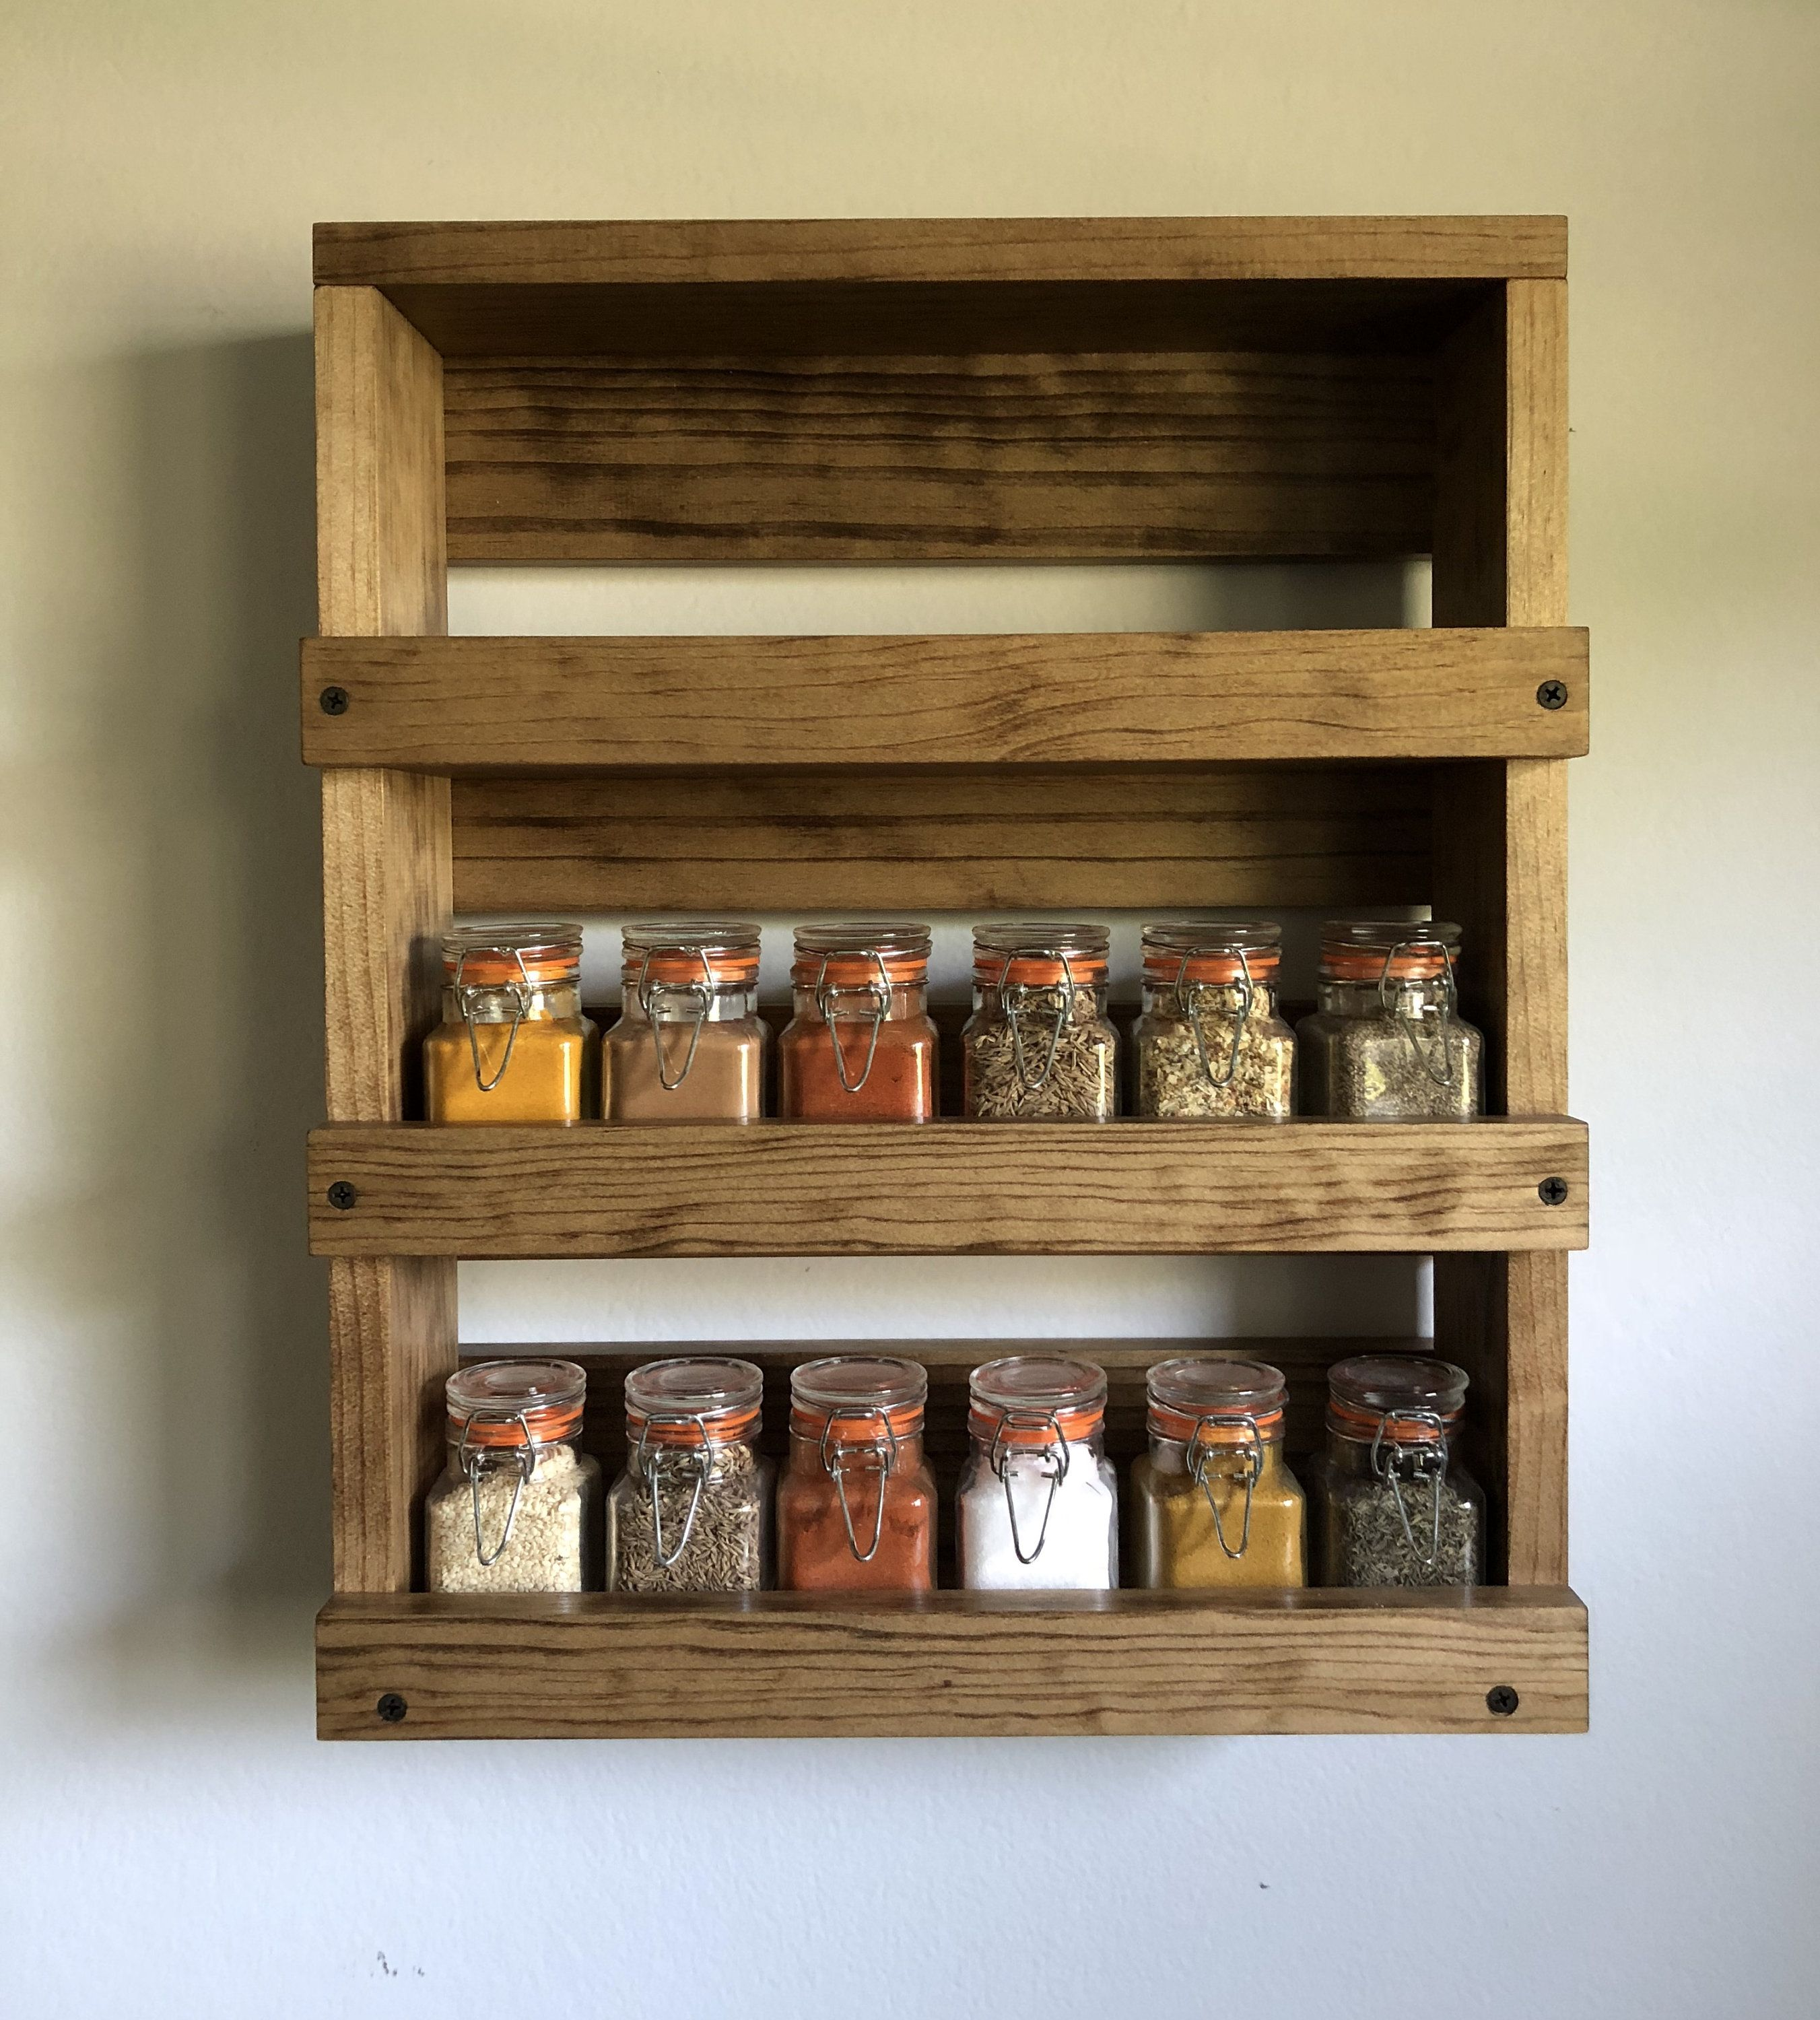 Wall Mounted Spice Rack Gift Item For Her Kitchen Spice Organizer Father S Day Gift Farmhouse De In 2020 Kitchen Wall Storage Wood Spice Rack Wall Mounted Spice Rack